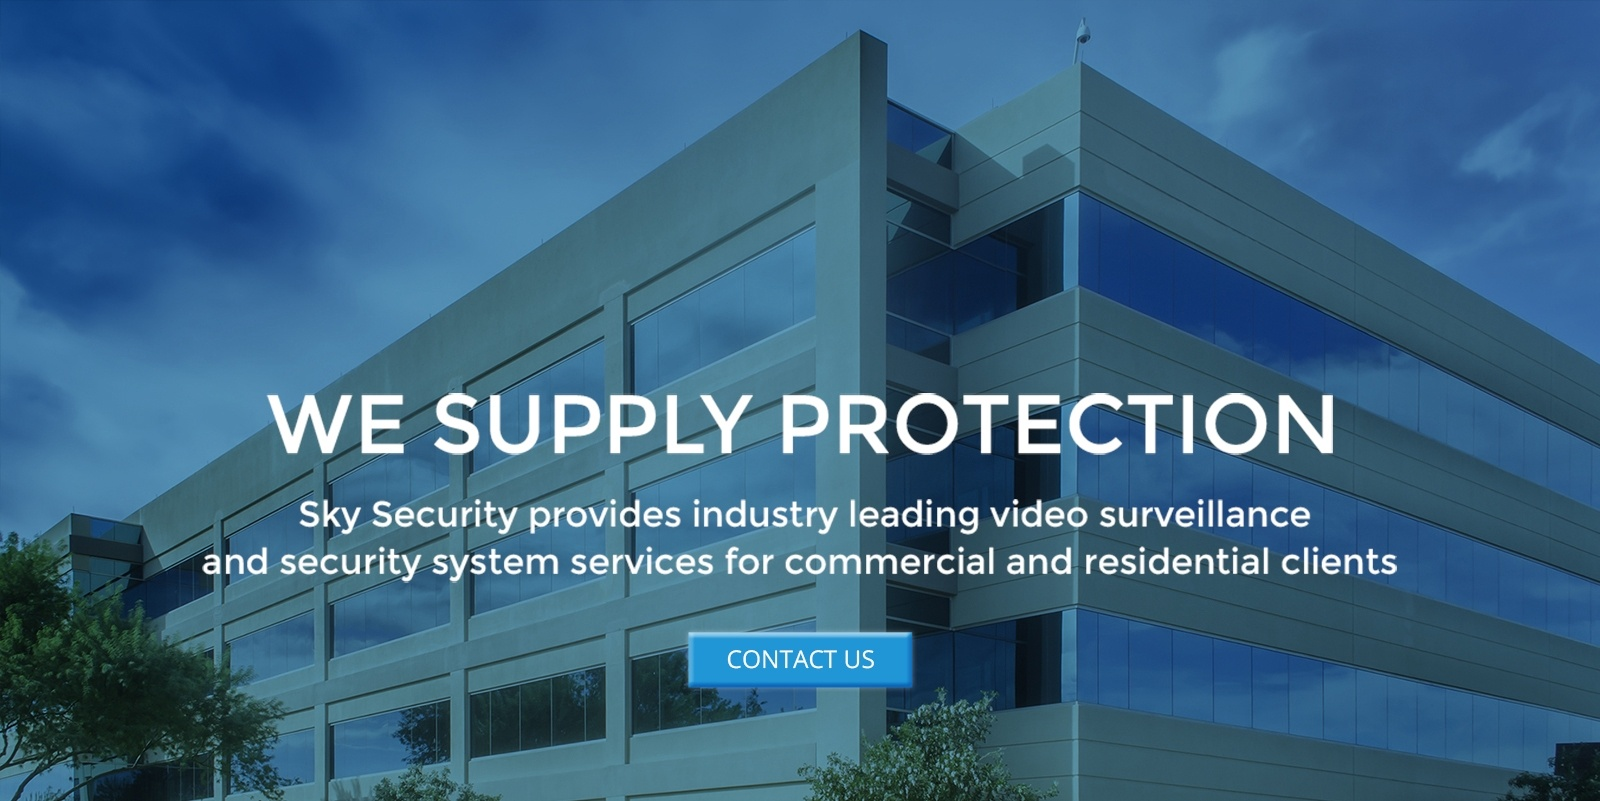 Sky Security Provides Industry Leading  Security System Services For Residential And Commercial Clients